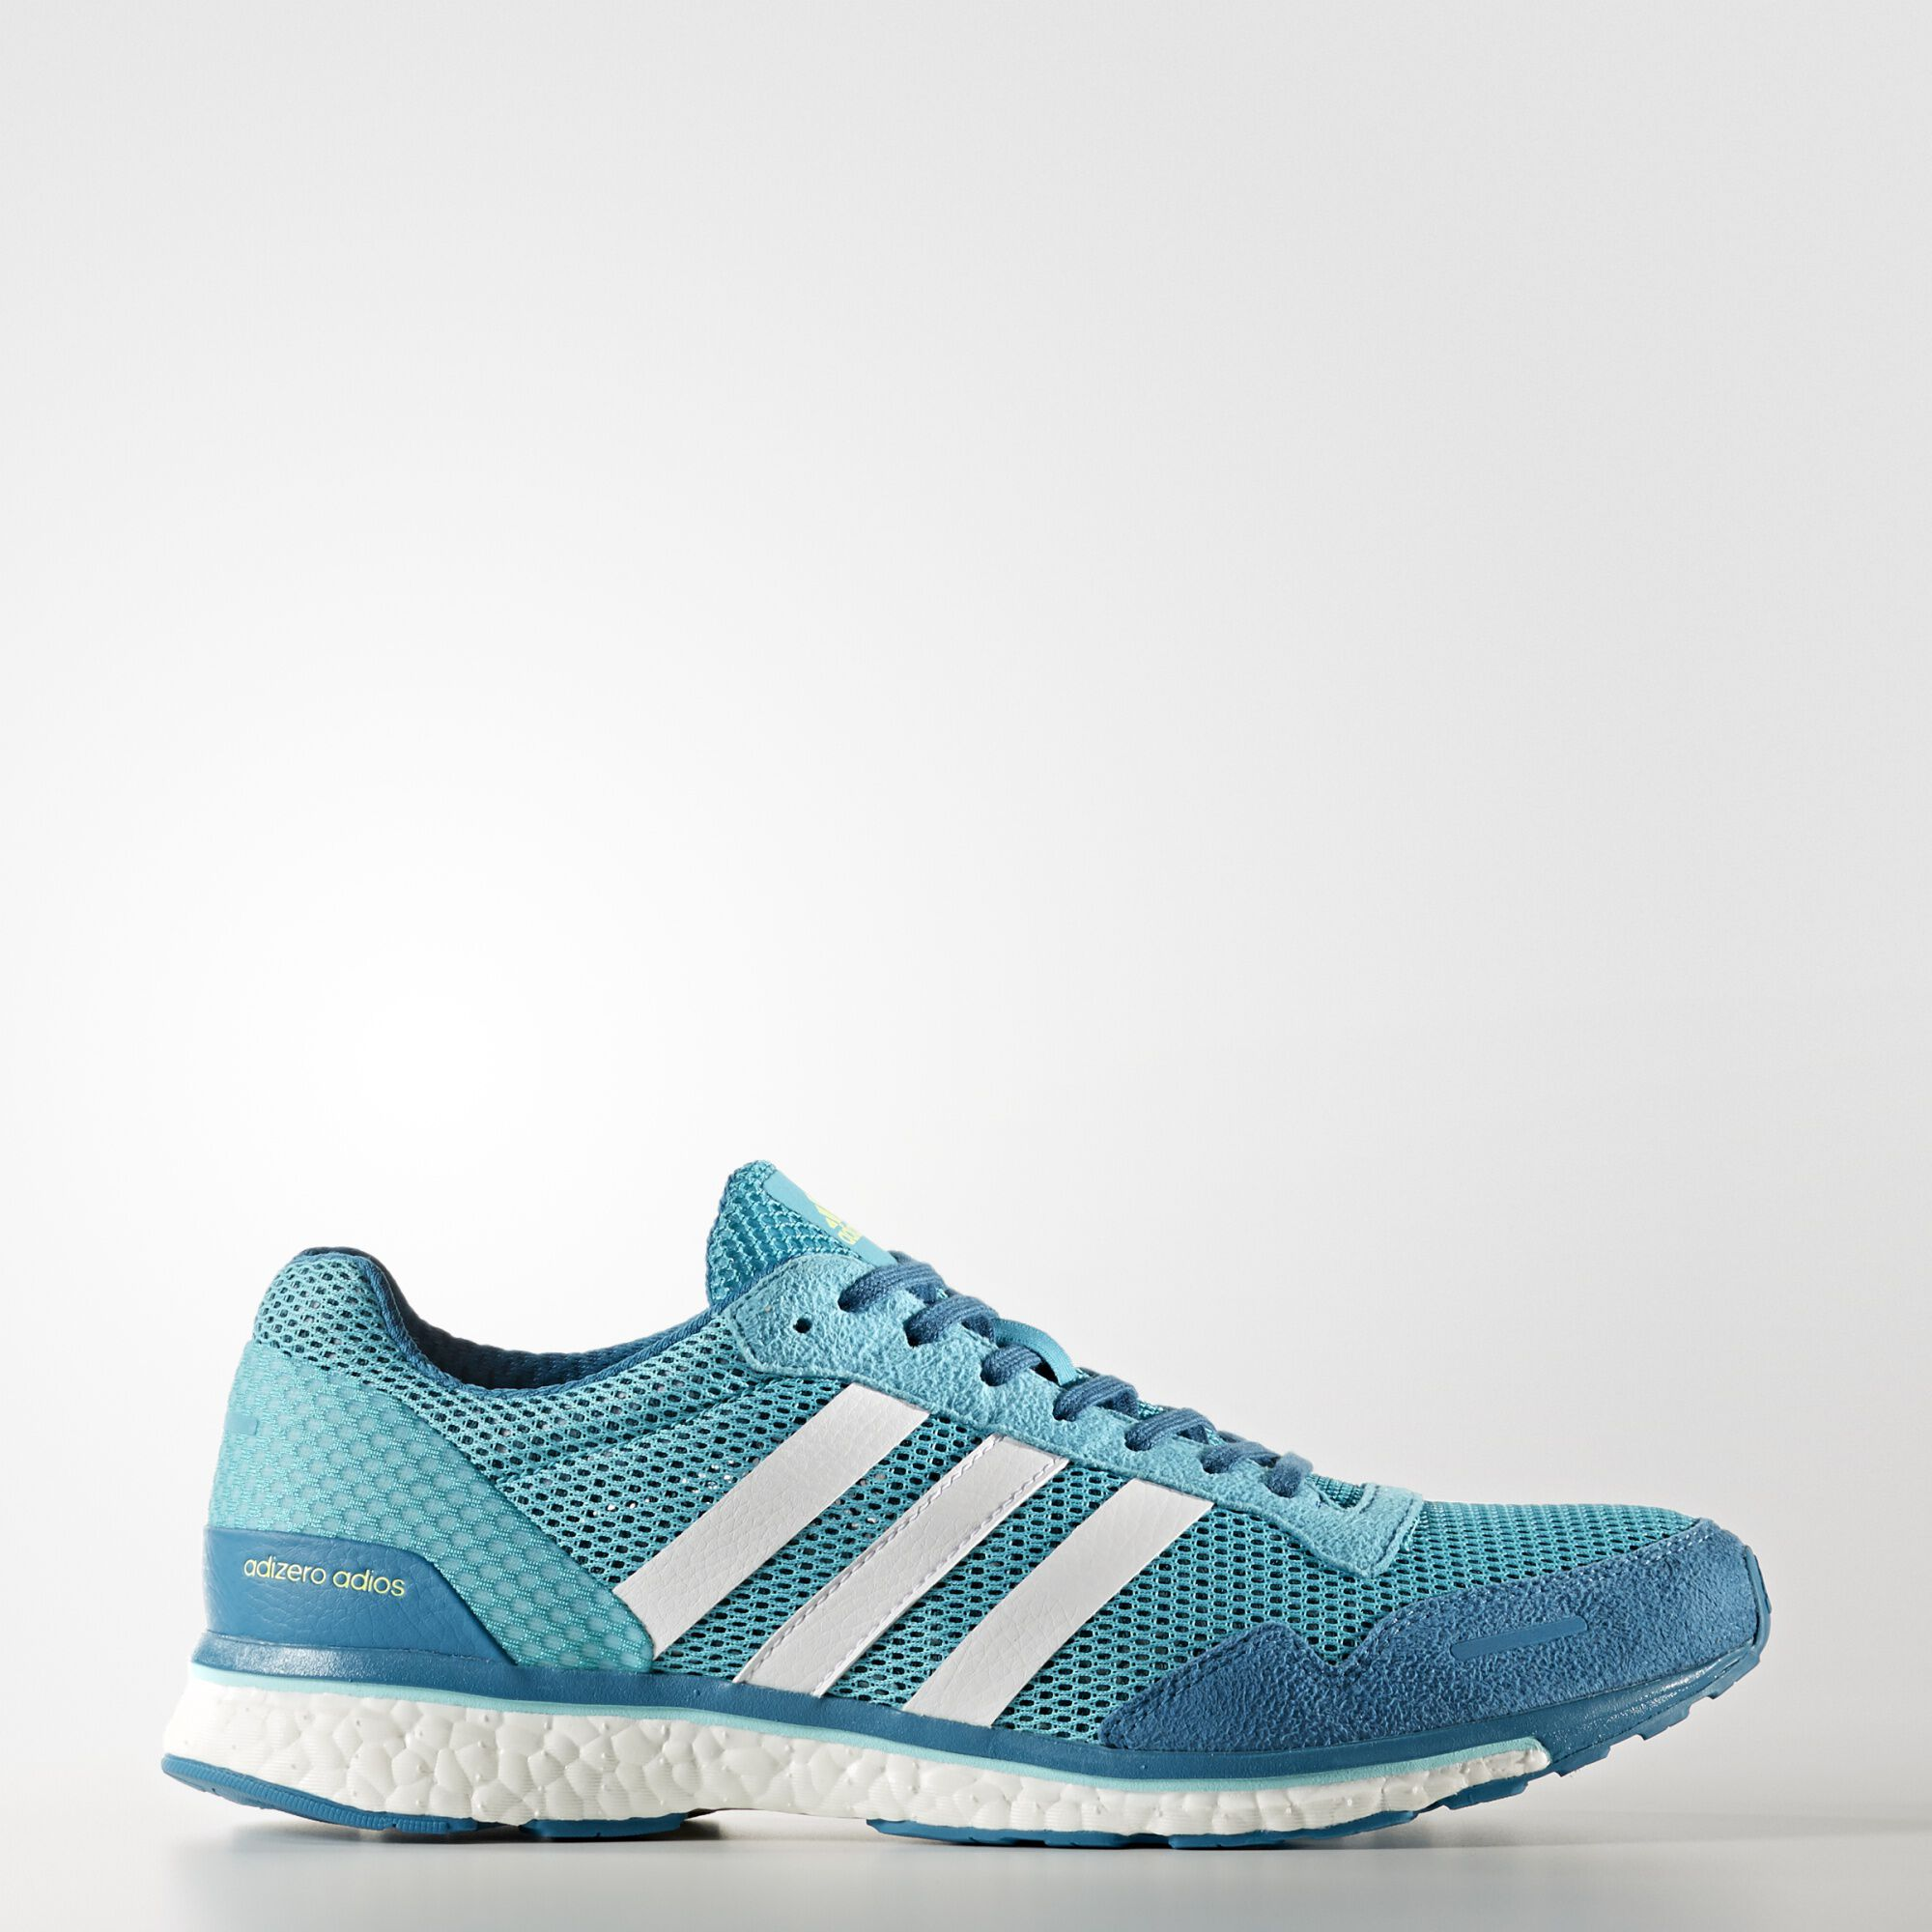 wholesale dealer 665dc 3803c Men s Running Shoes  UltraBOOST, Alphabounce and More   adidas US  Men s  Adidas Running Climachill Ride Boost GFX Black White Shoes ...